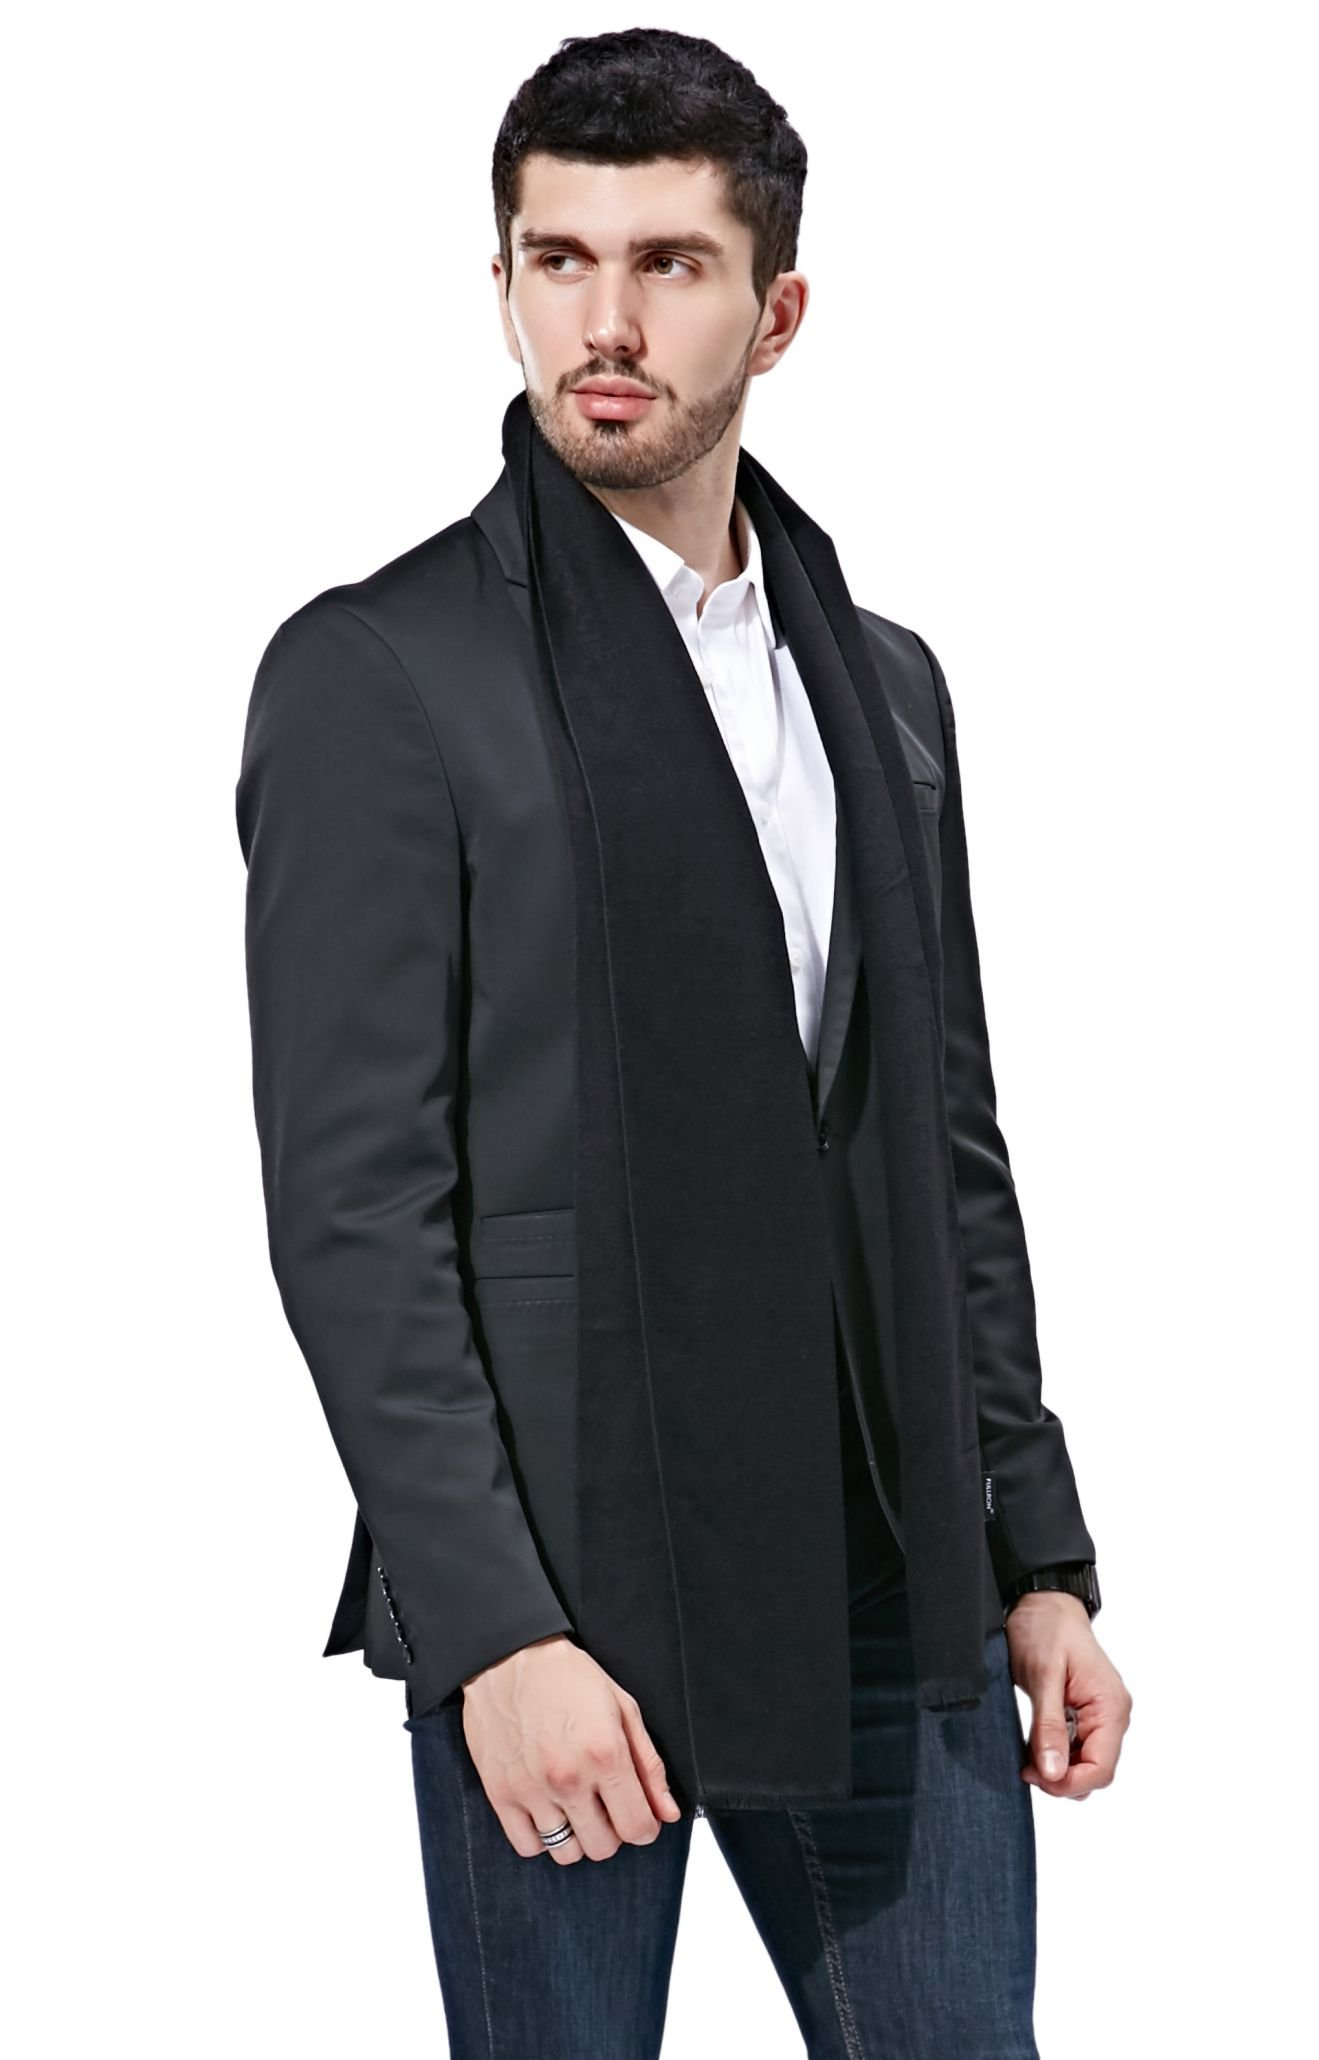 FULLRON Men Cashmere Scarf Long Warm Scarves, Black Scarf for Fall & Winter